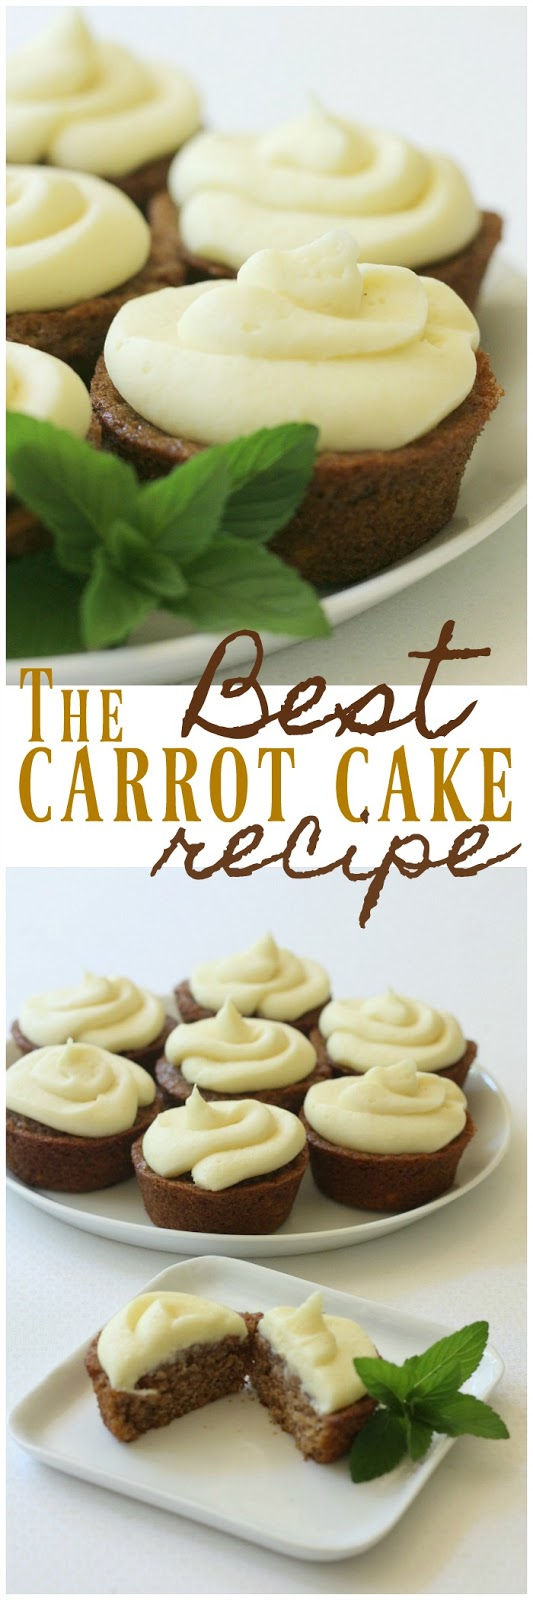 carrot cake recipe, carrot cake cupcakes, baking carrot cake from scratch, spice cake, cream cheese frosting recipe, best cream cheese frosting